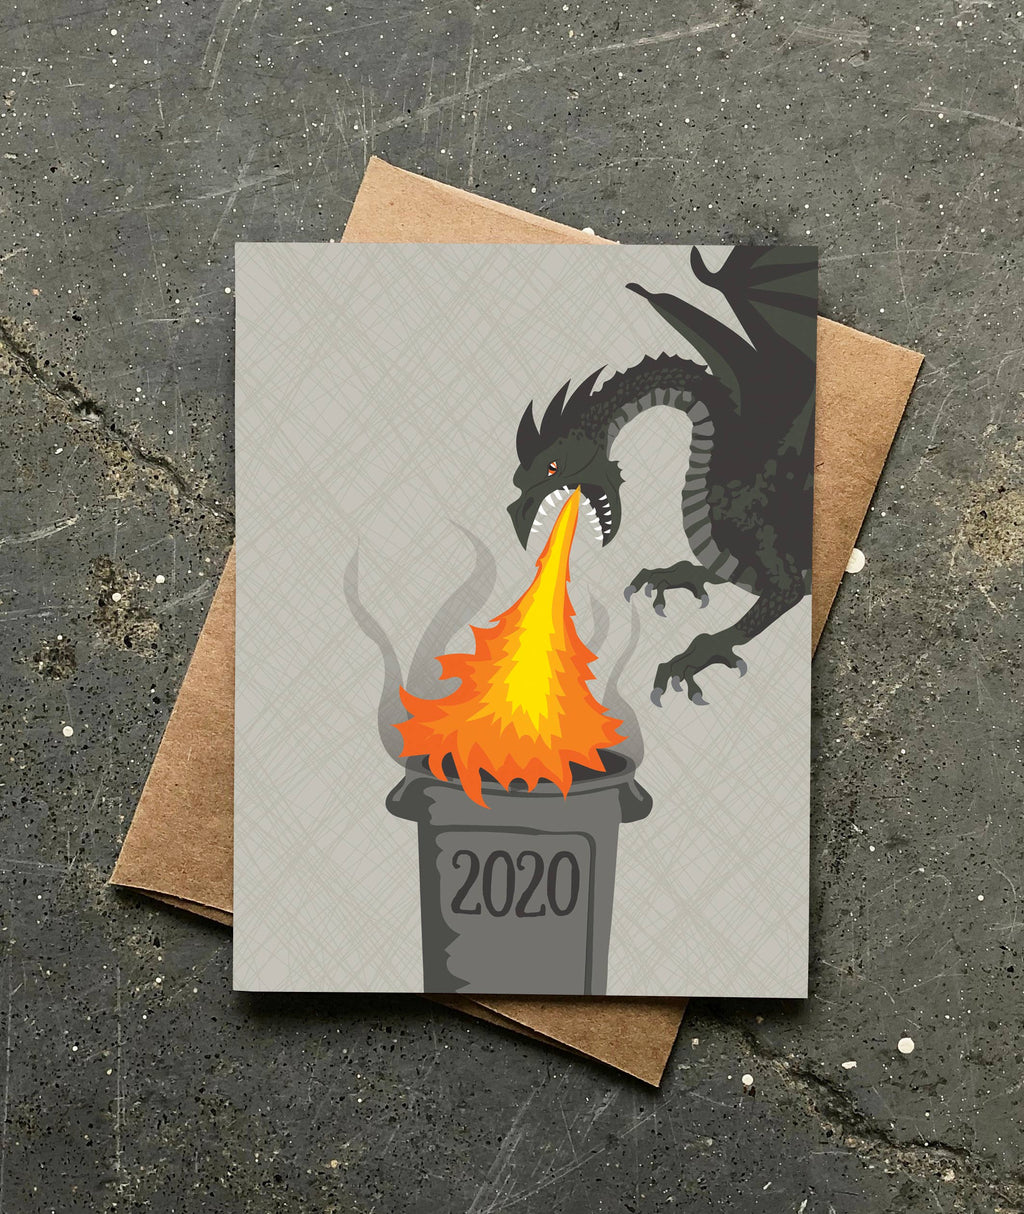 2020 Trash Fire New Year's Card - Box of 8